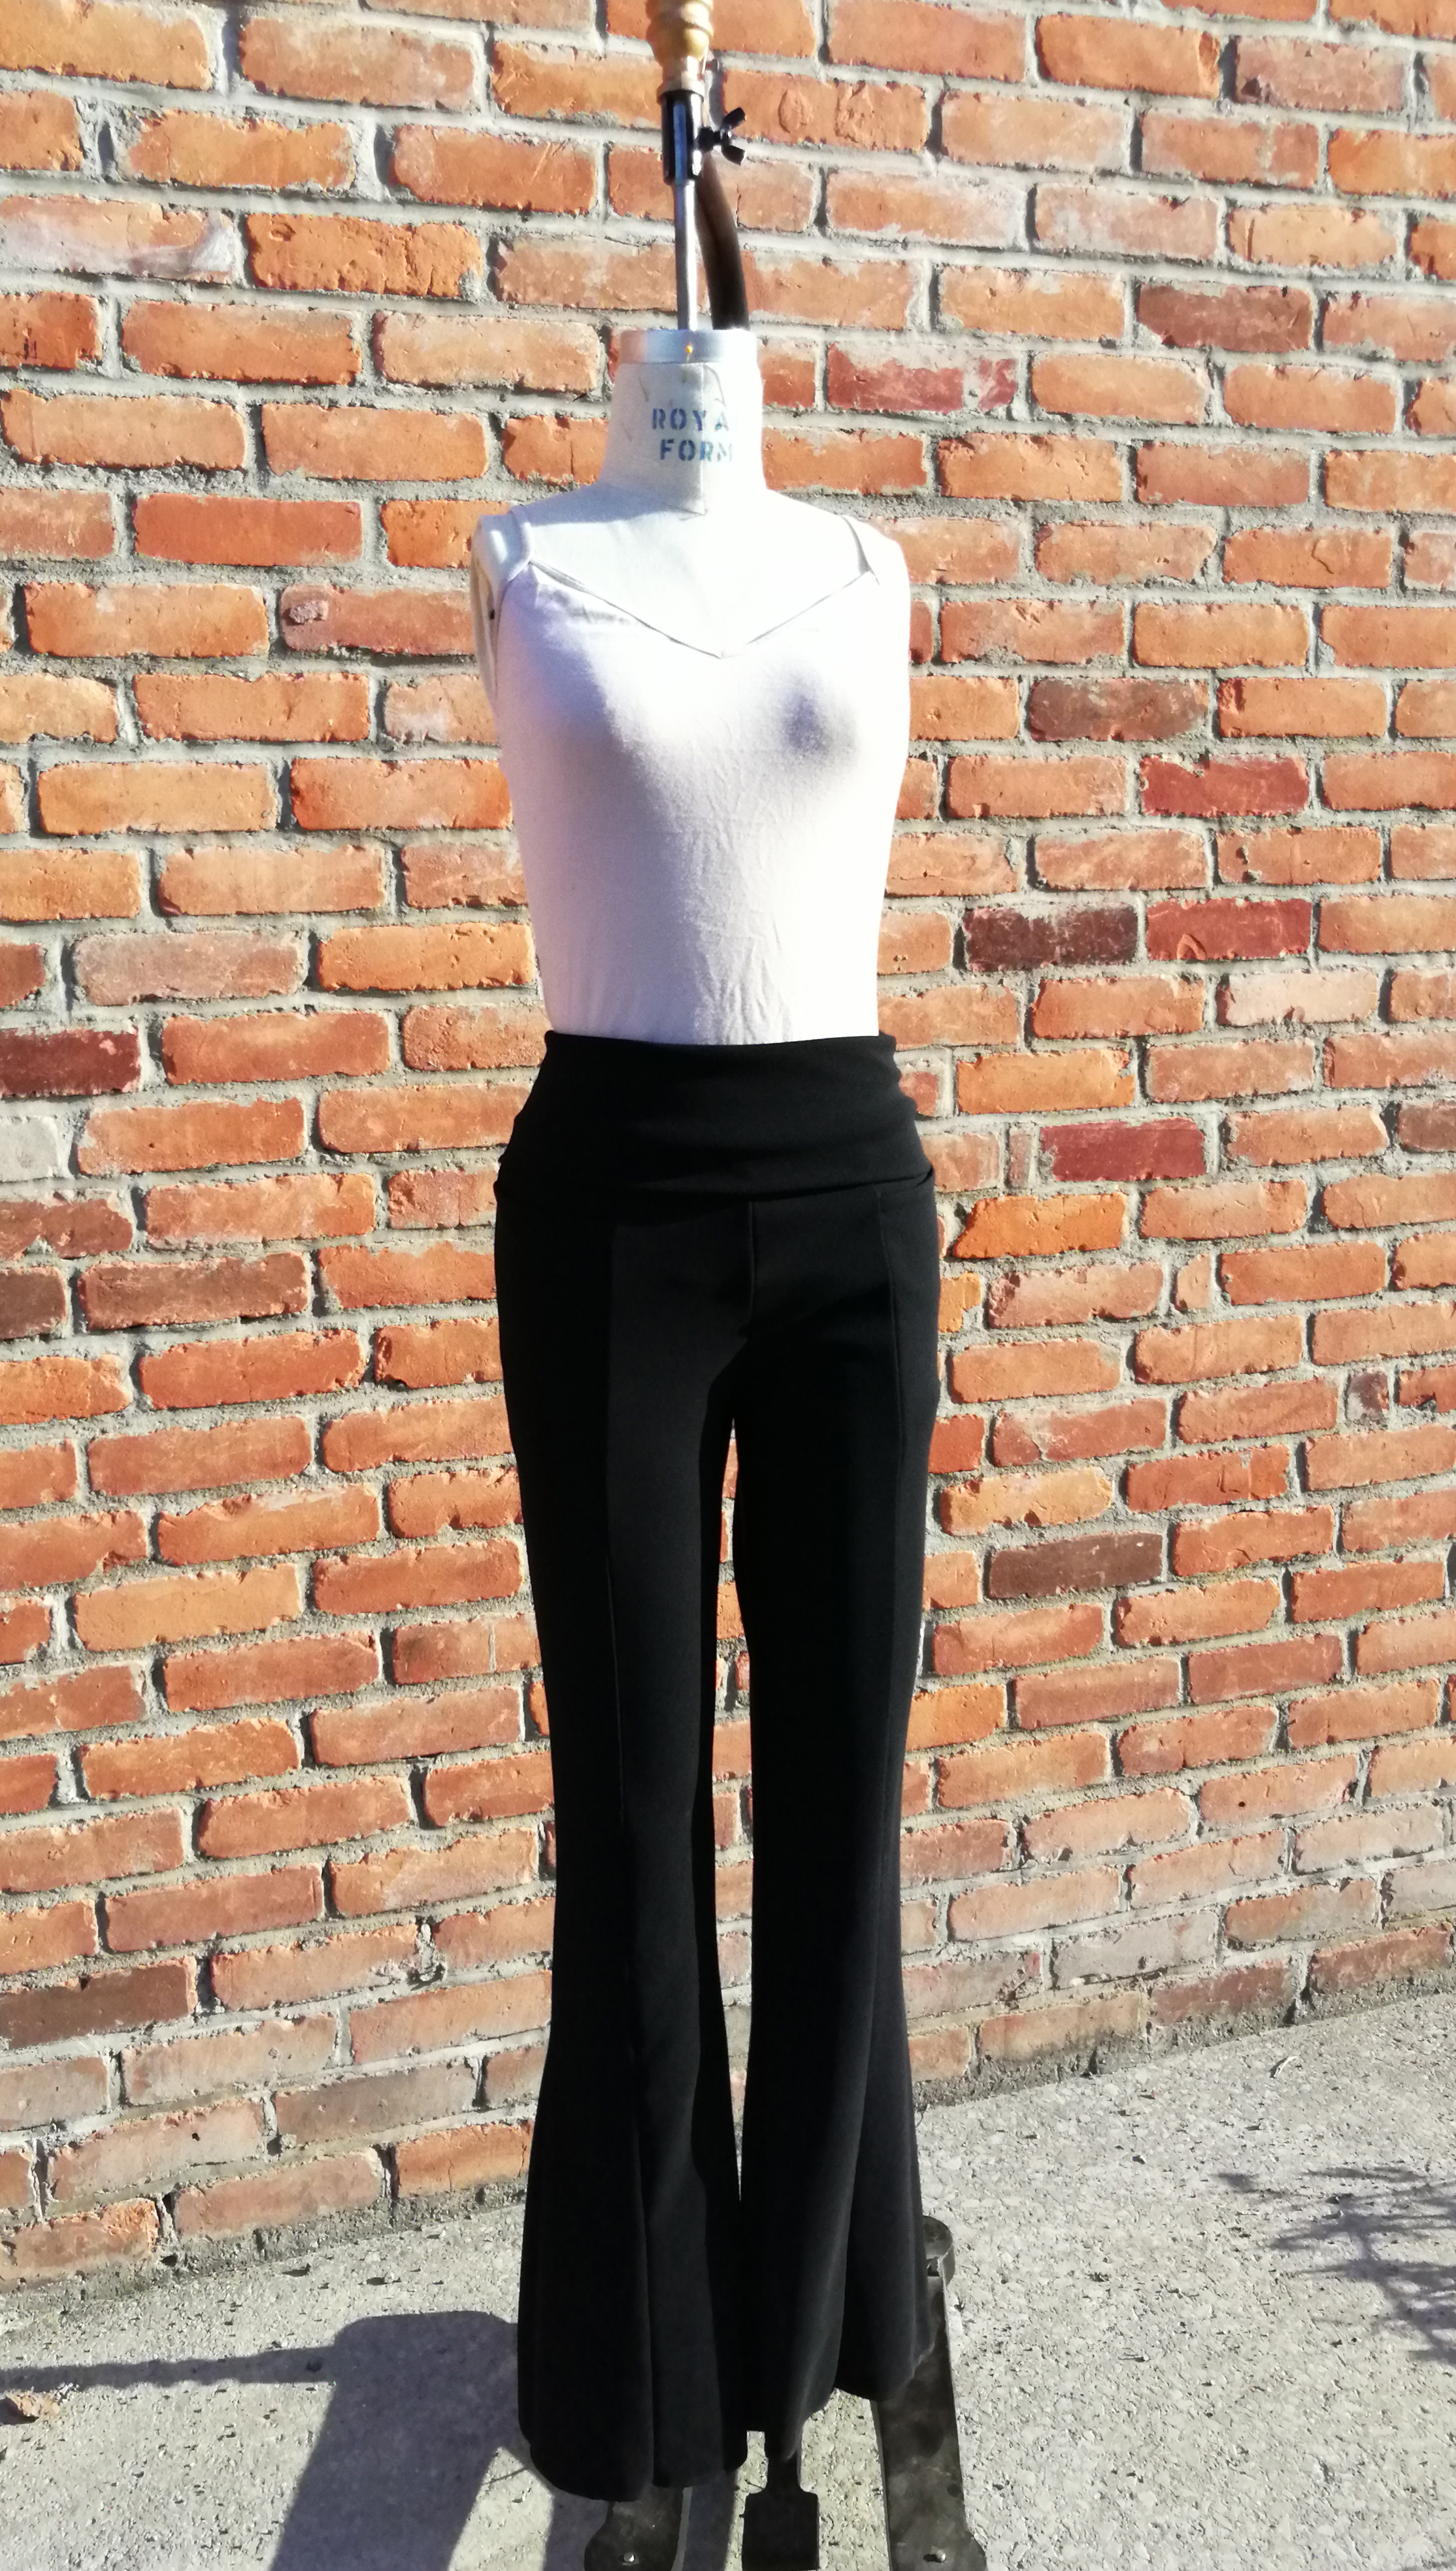 Perfect Pant Flare - Your most flattering boot cut flare